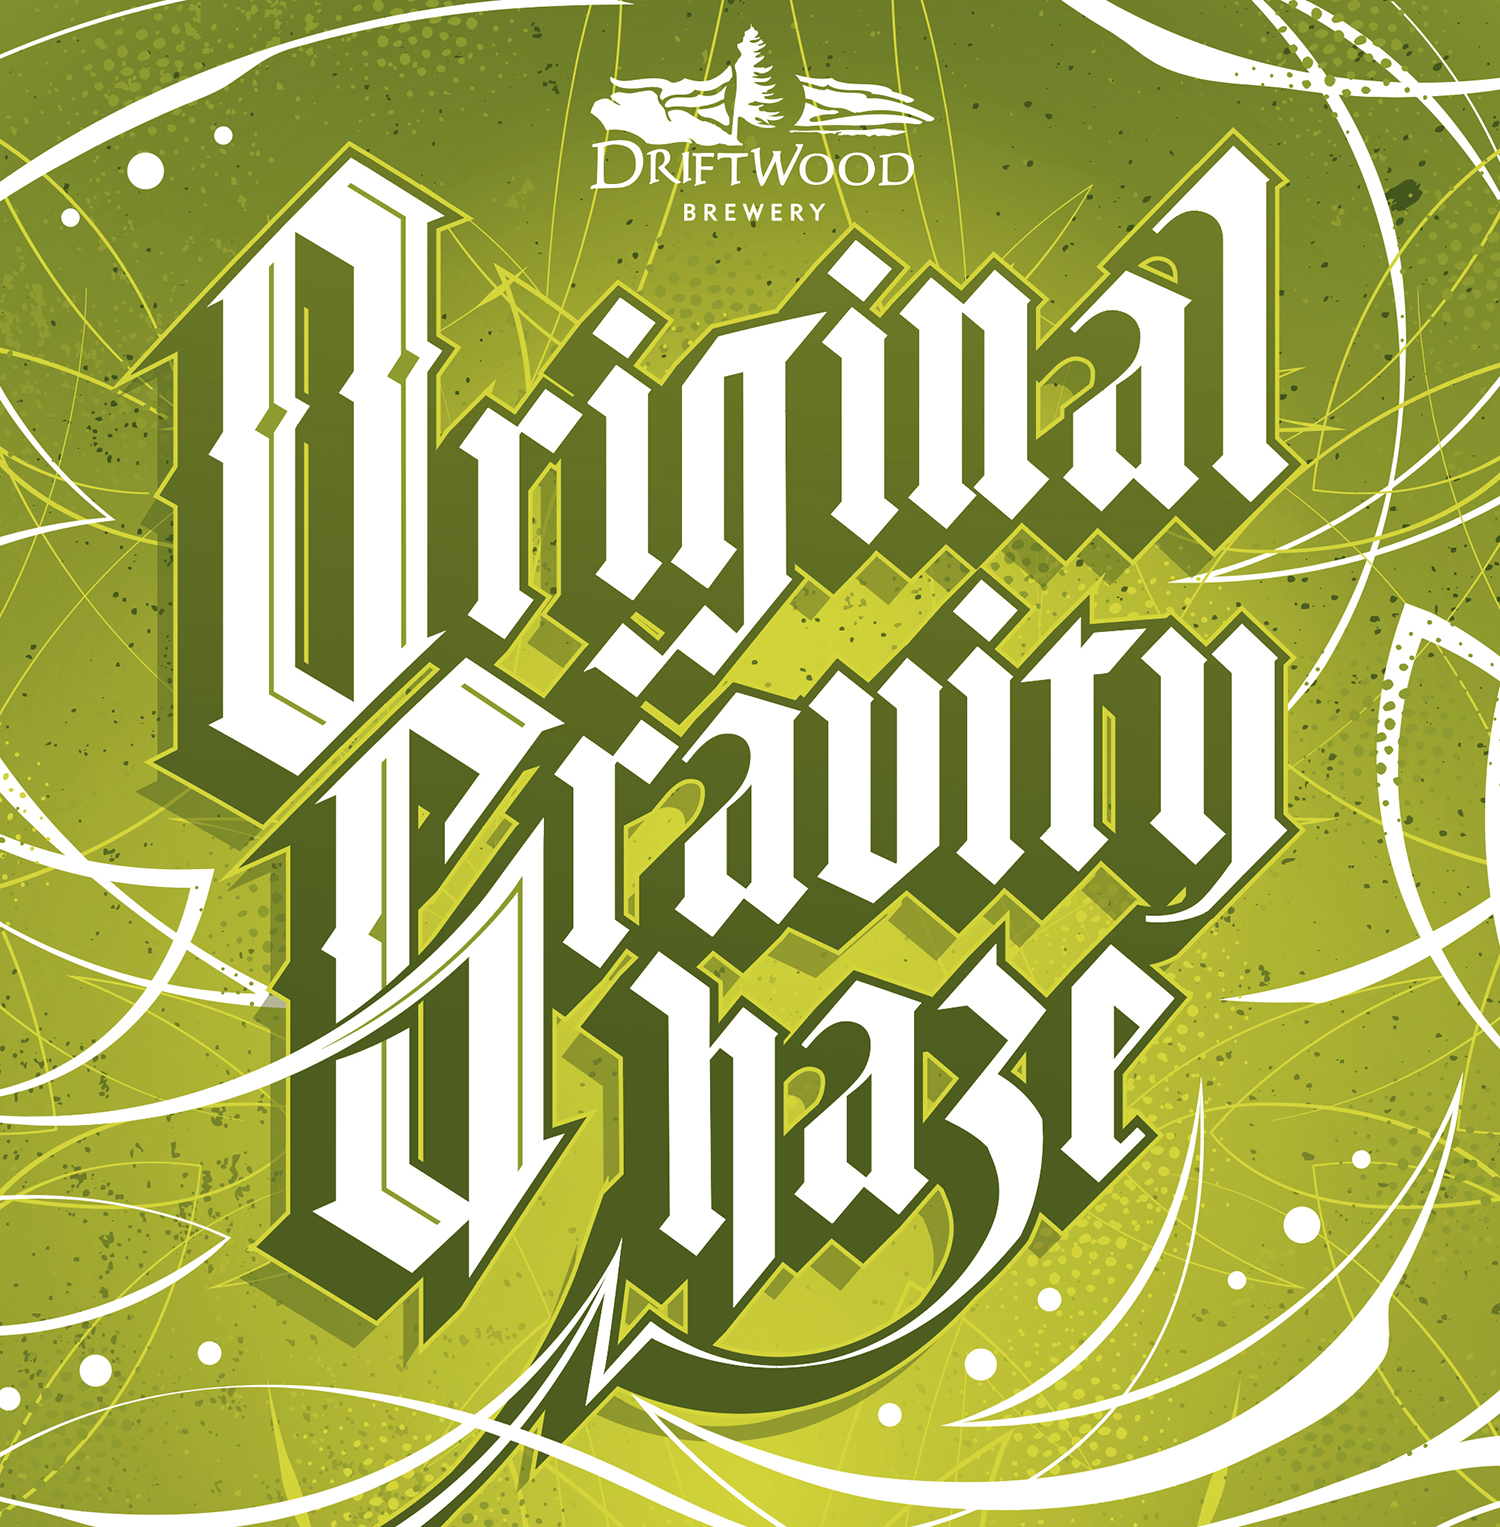 Original Gravity Haze packaging design, for Driftwood Brewery